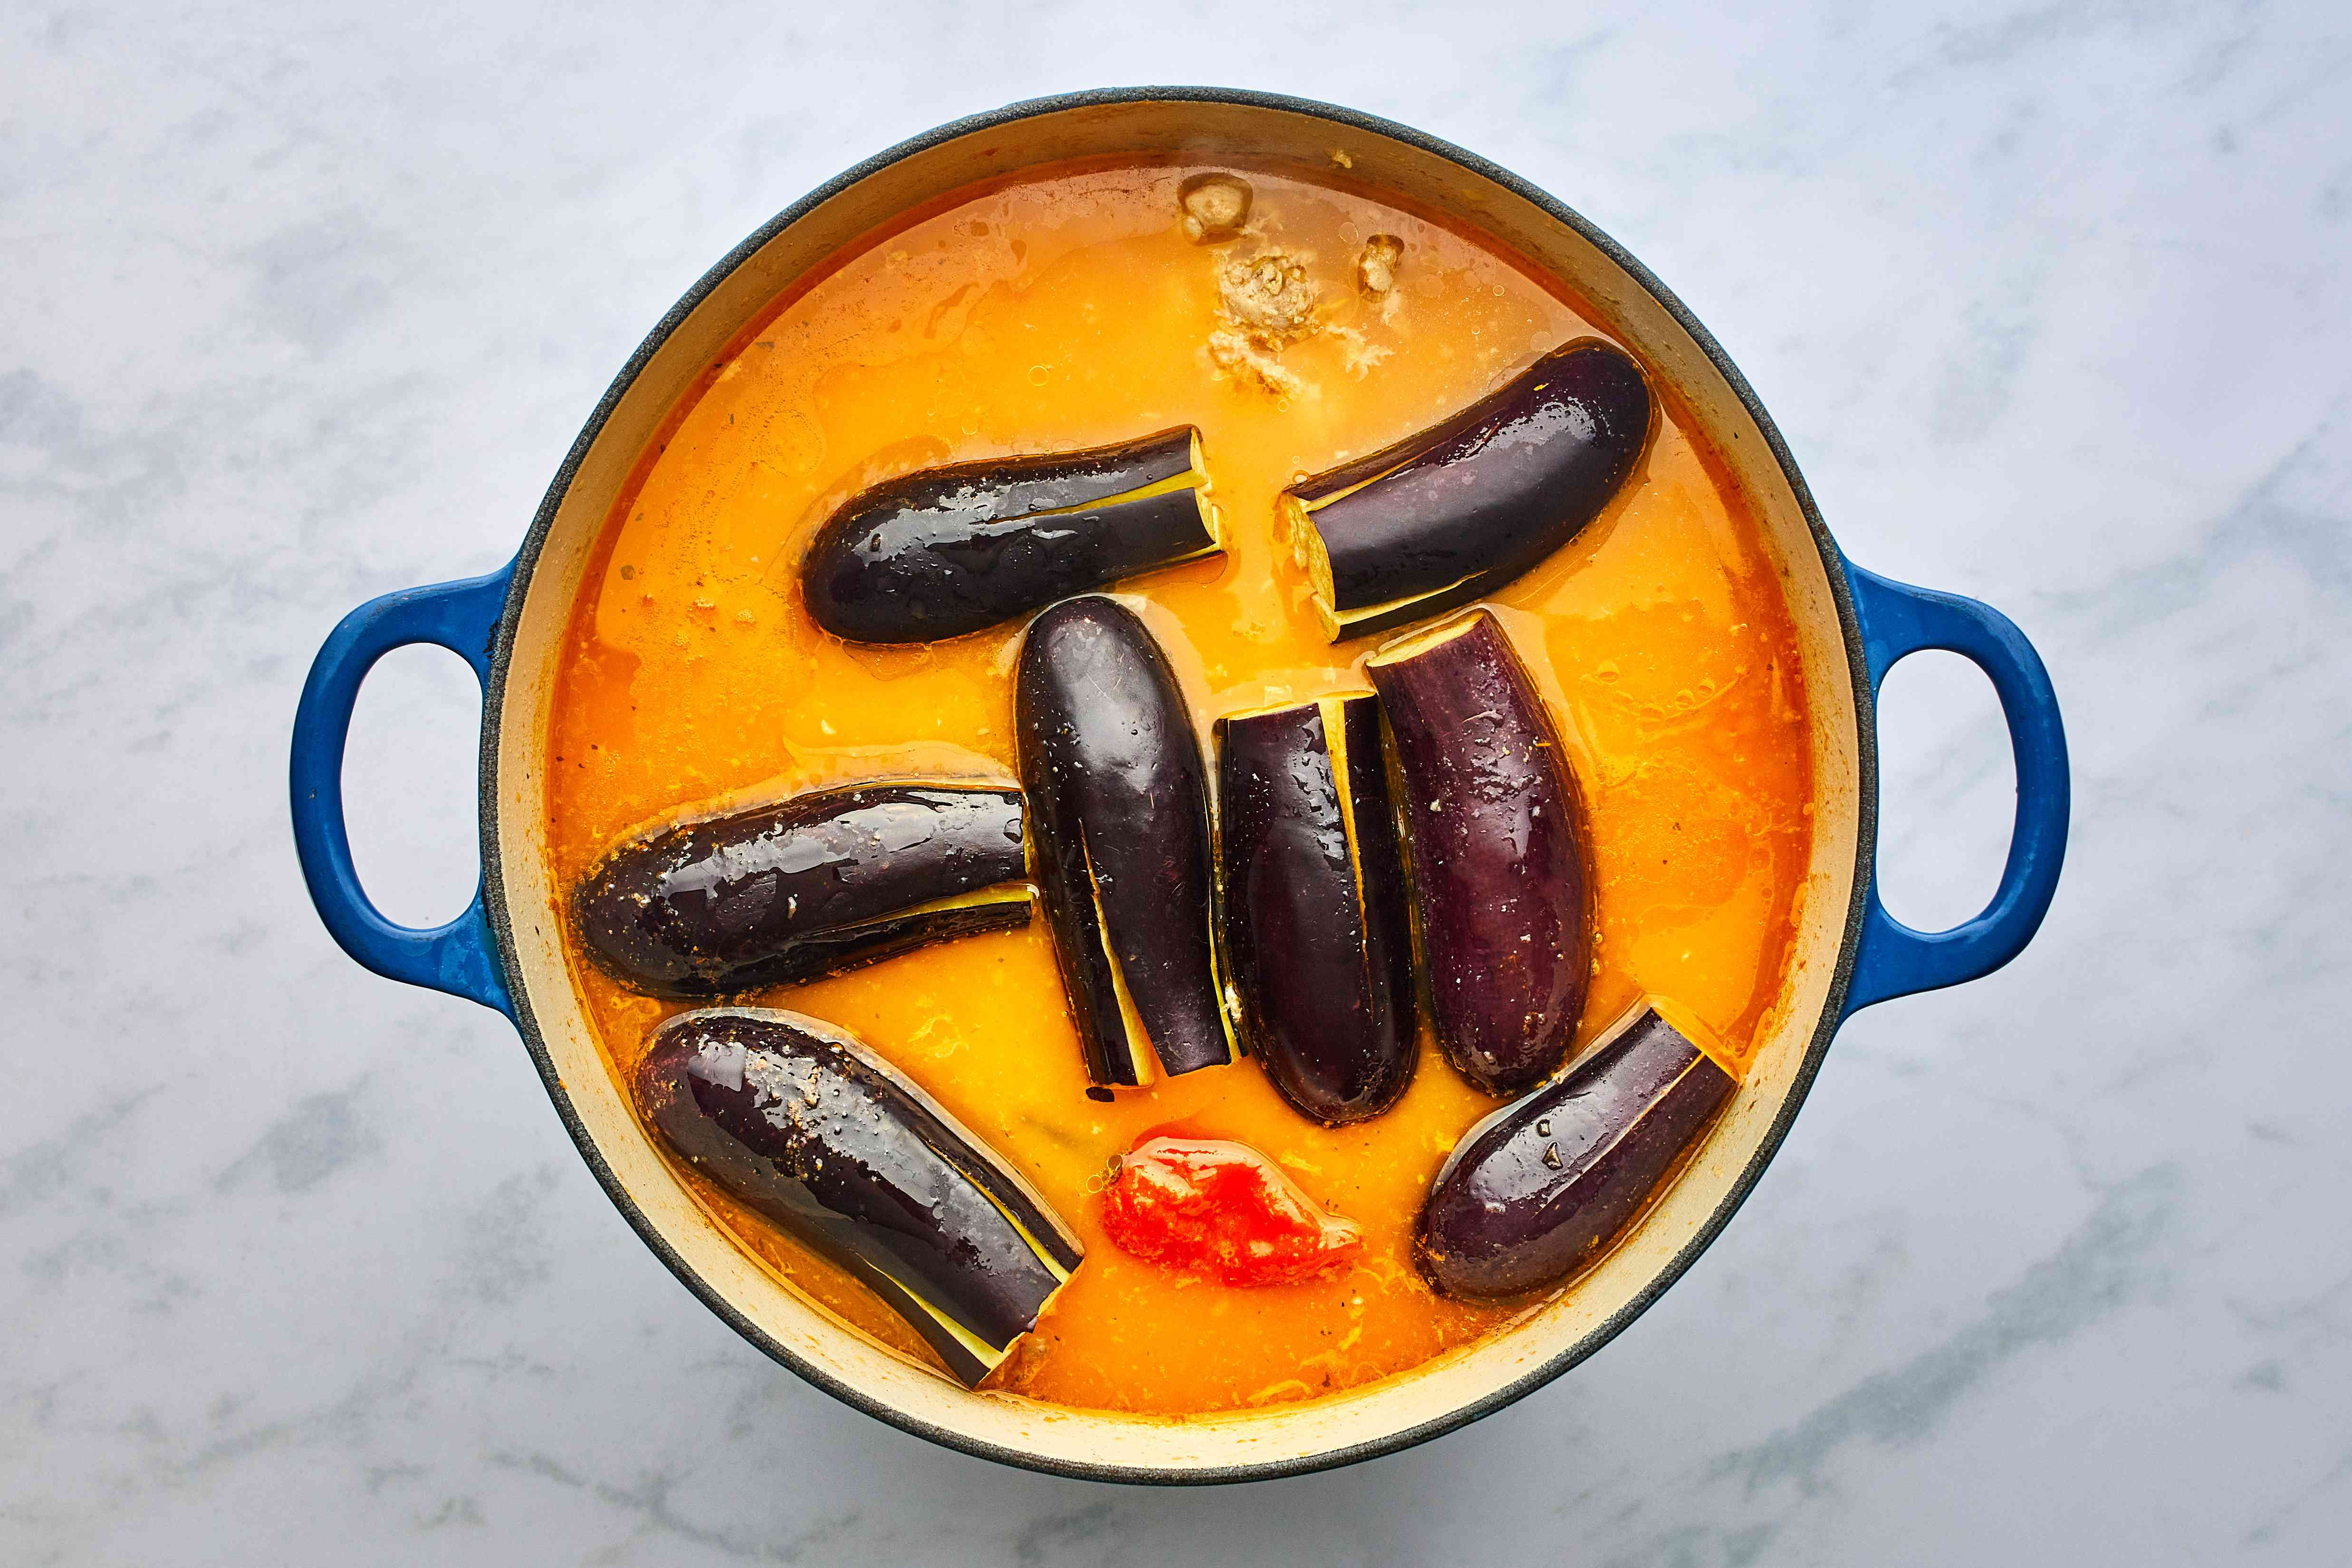 eggplant added to the soup